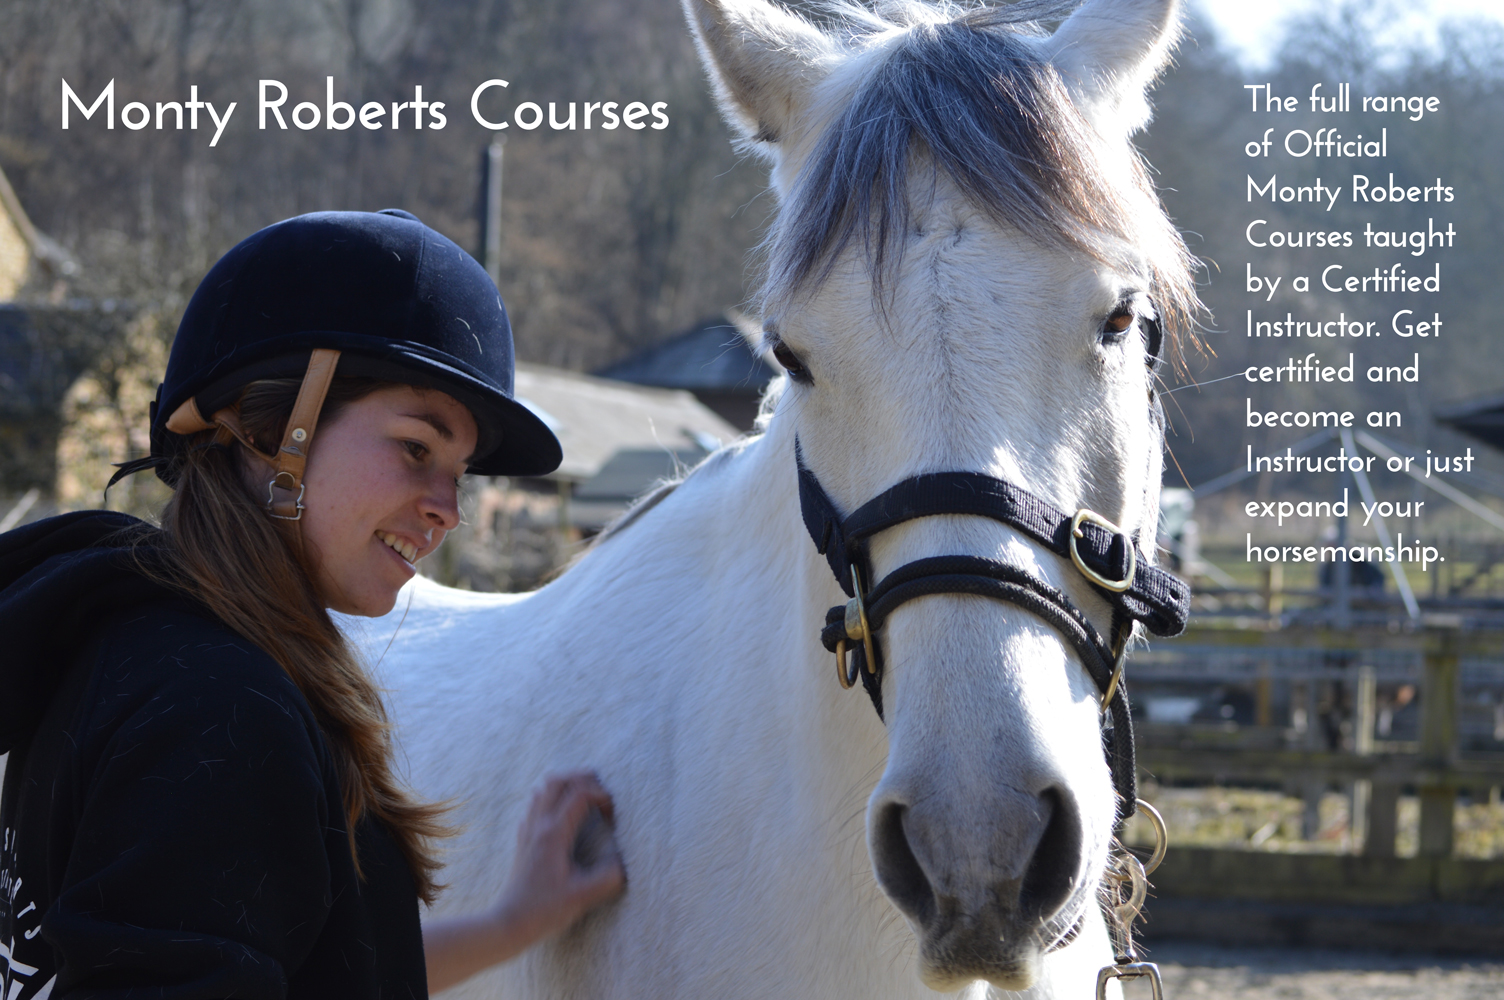 Monty Roberts Courses